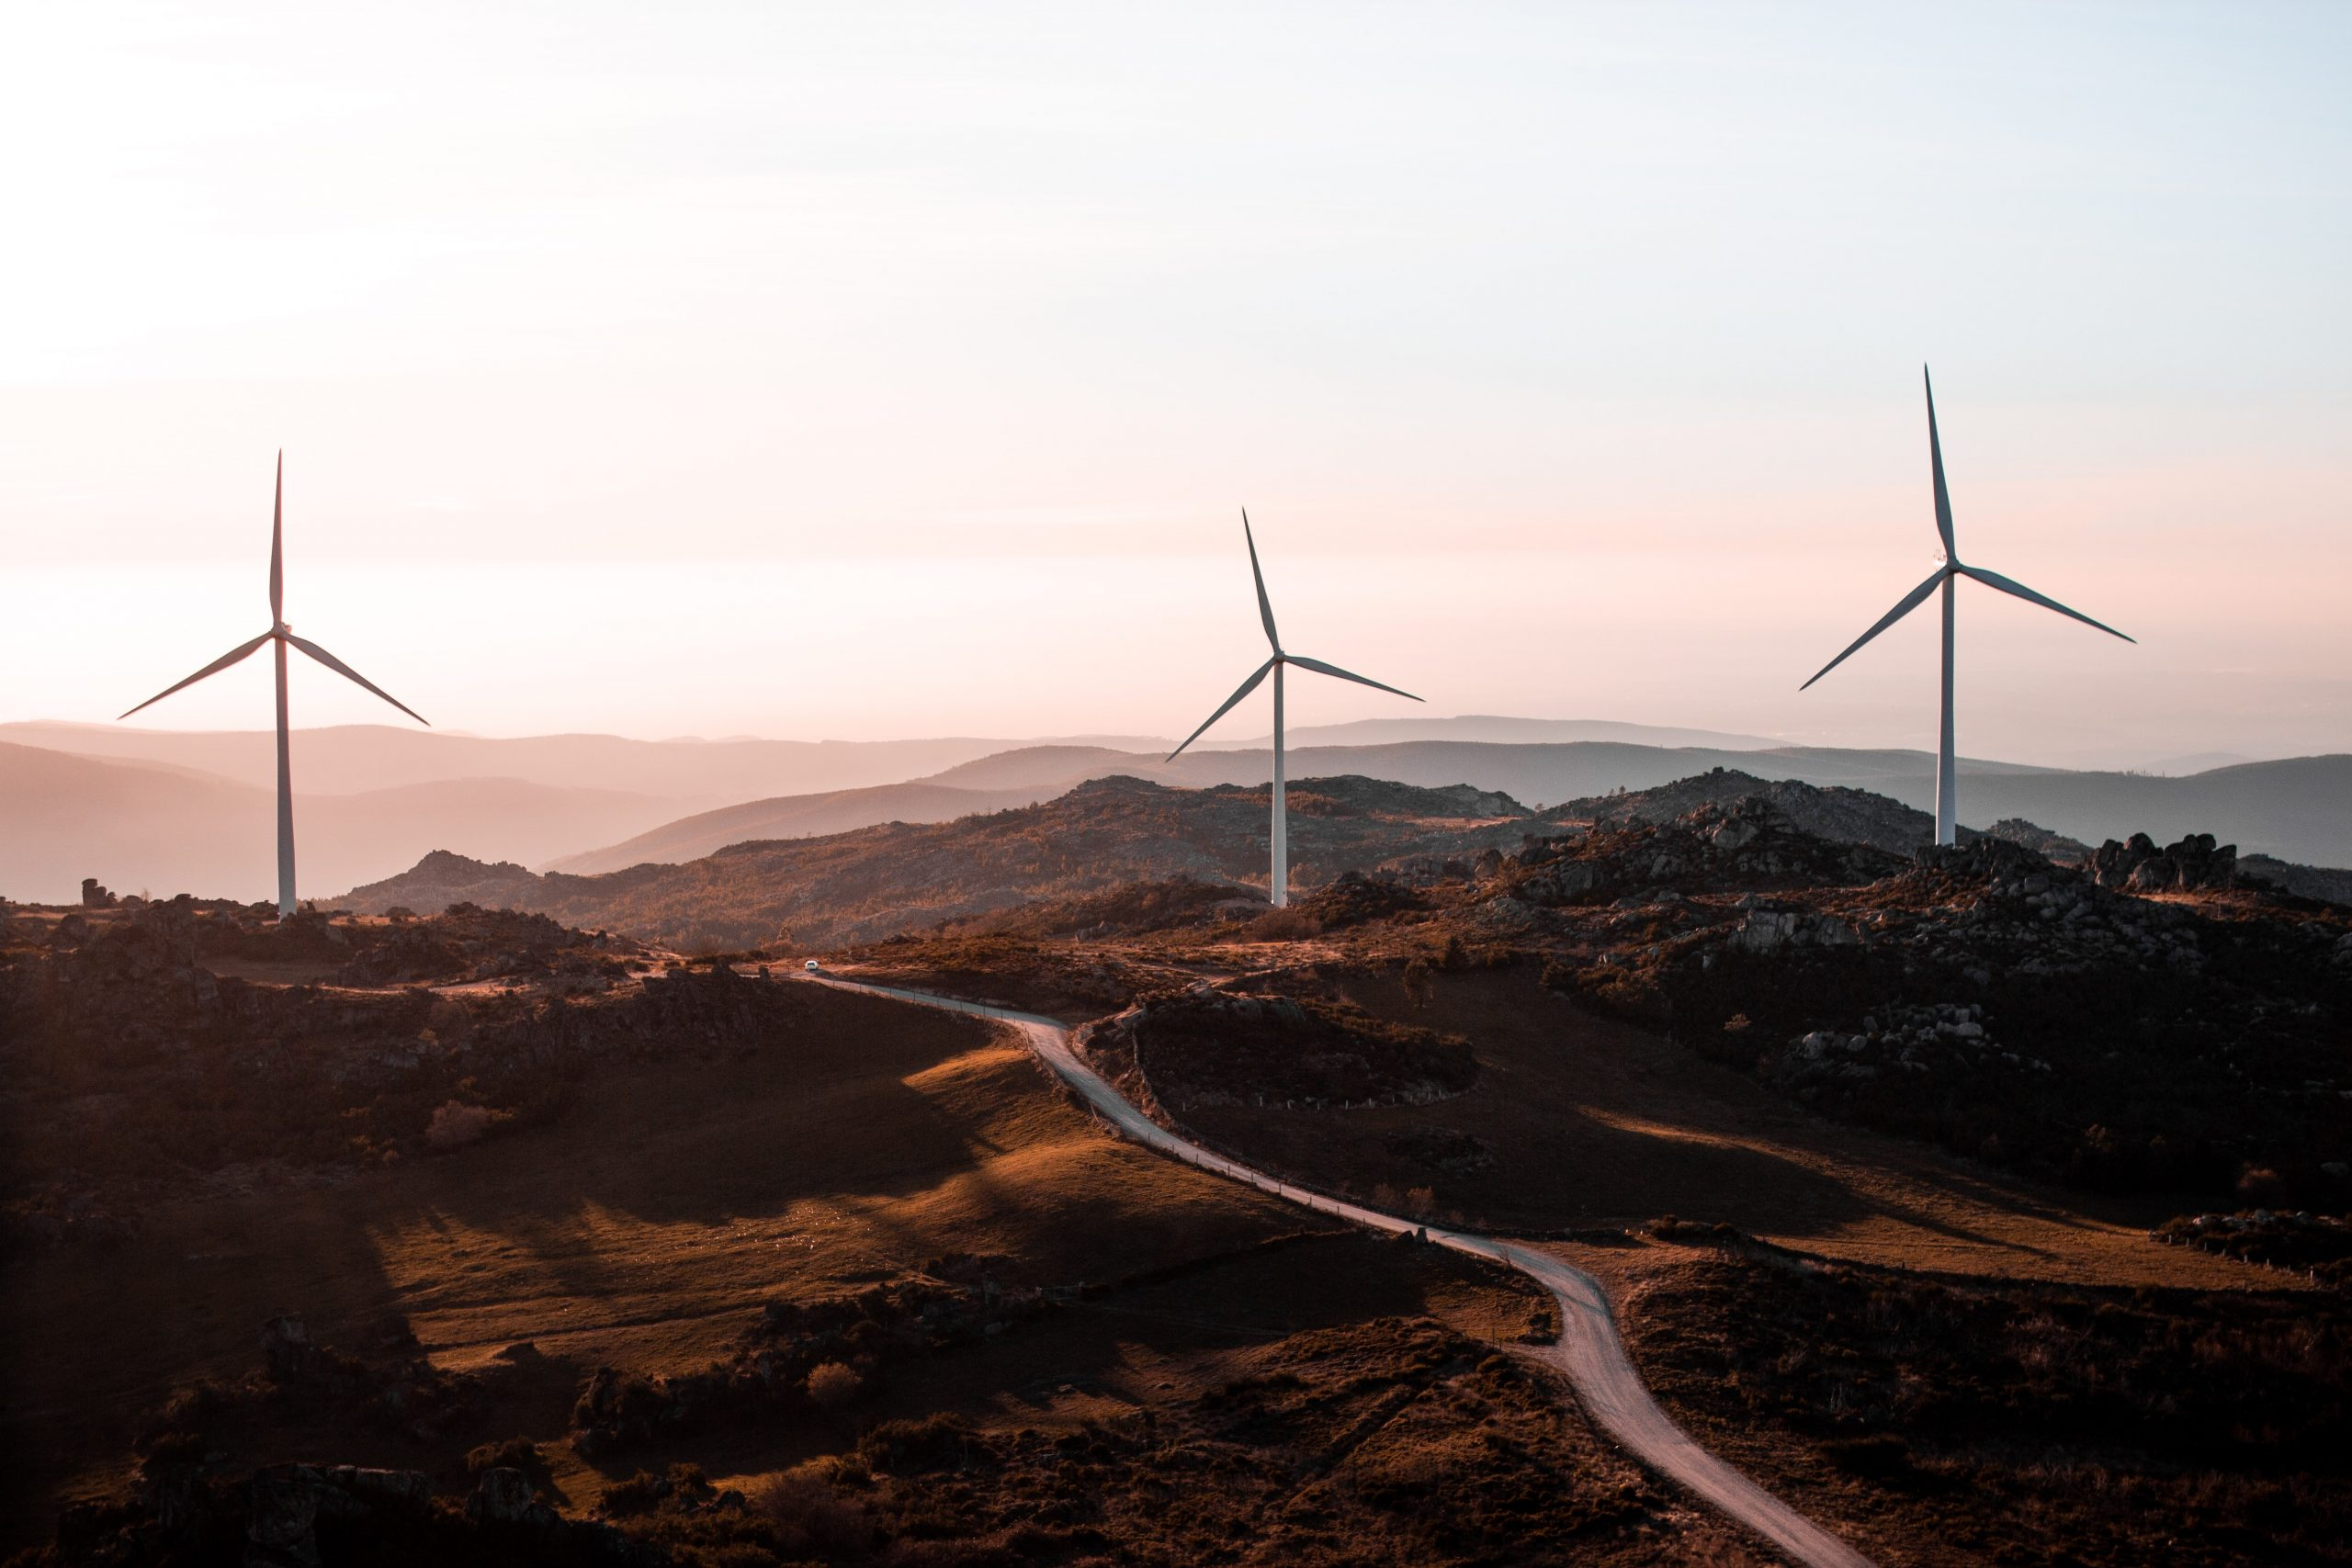 The Wind Turbines can save your life! Find out here